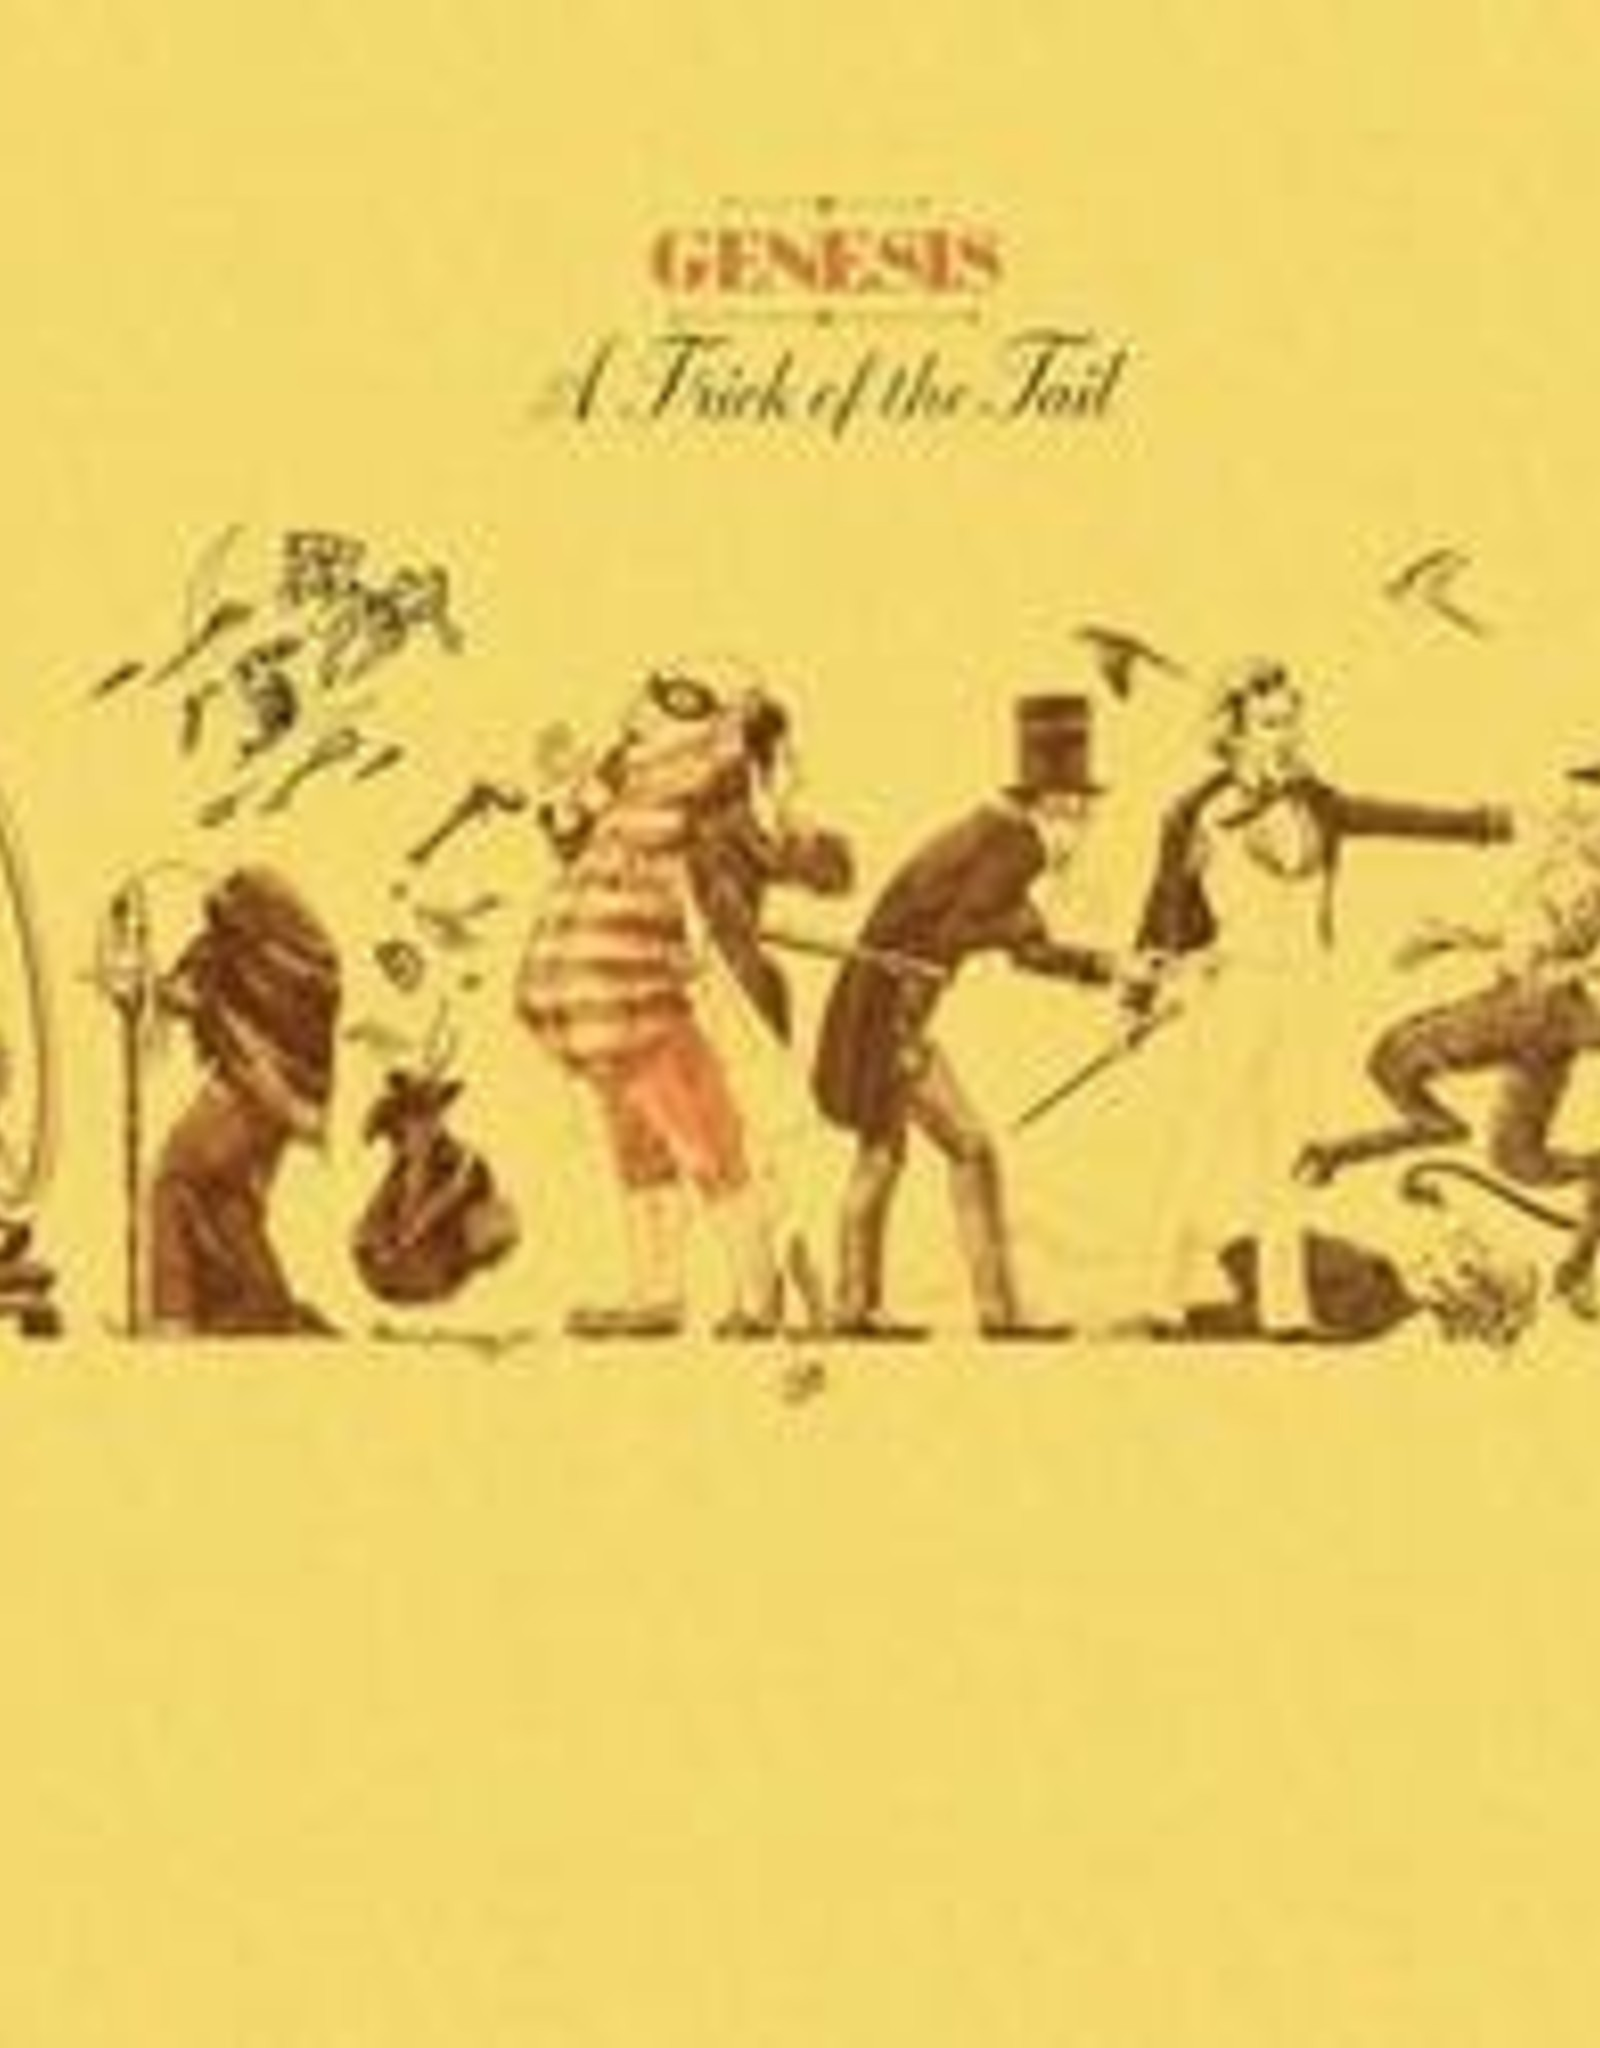 Genesis - Trick of the Tail (Yellow Vinyl)